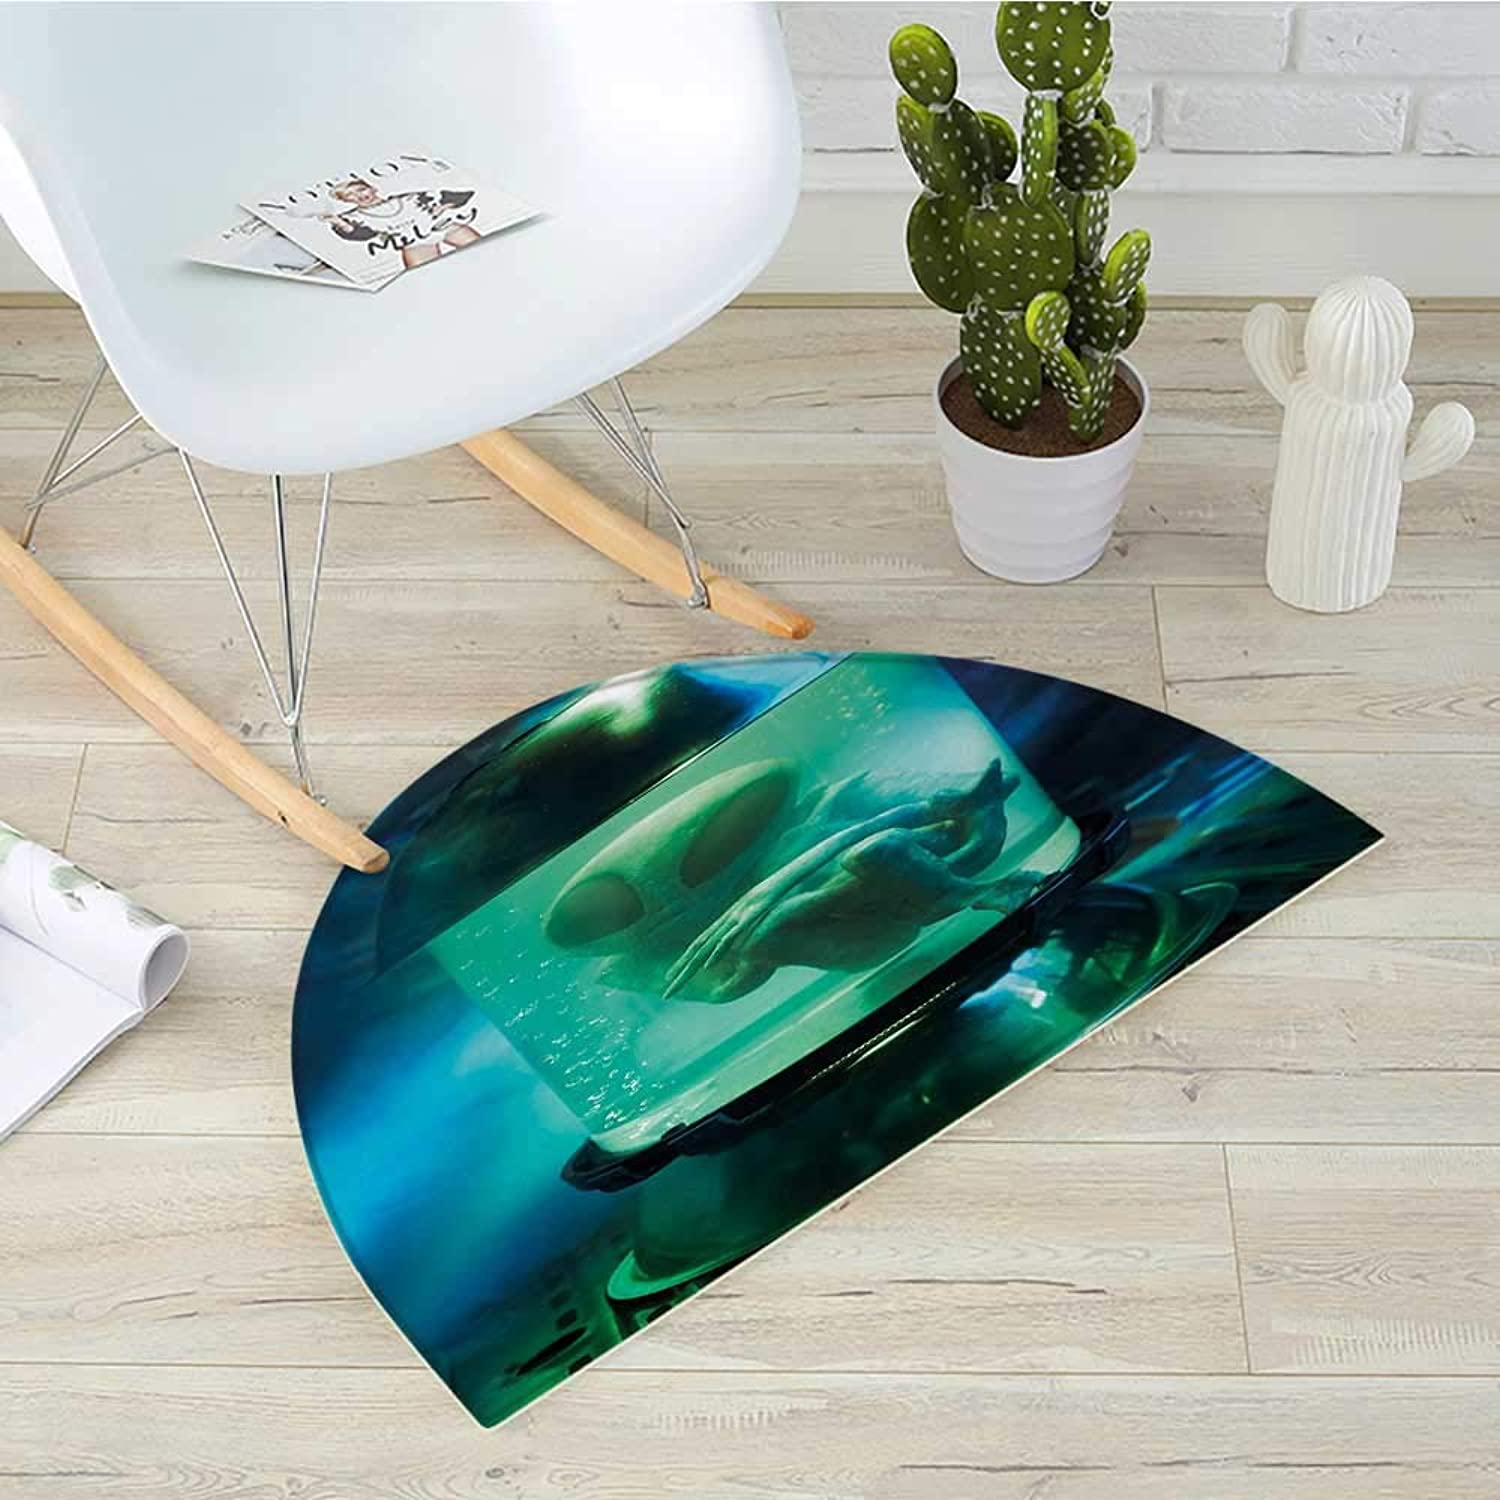 Outer Space Semicircle Doormat Martian UFO Alien in a Aquarium Like Tube Artwork Image Halfmoon doormats H 39.3  xD 59  bluee Sky bluee and Light Green